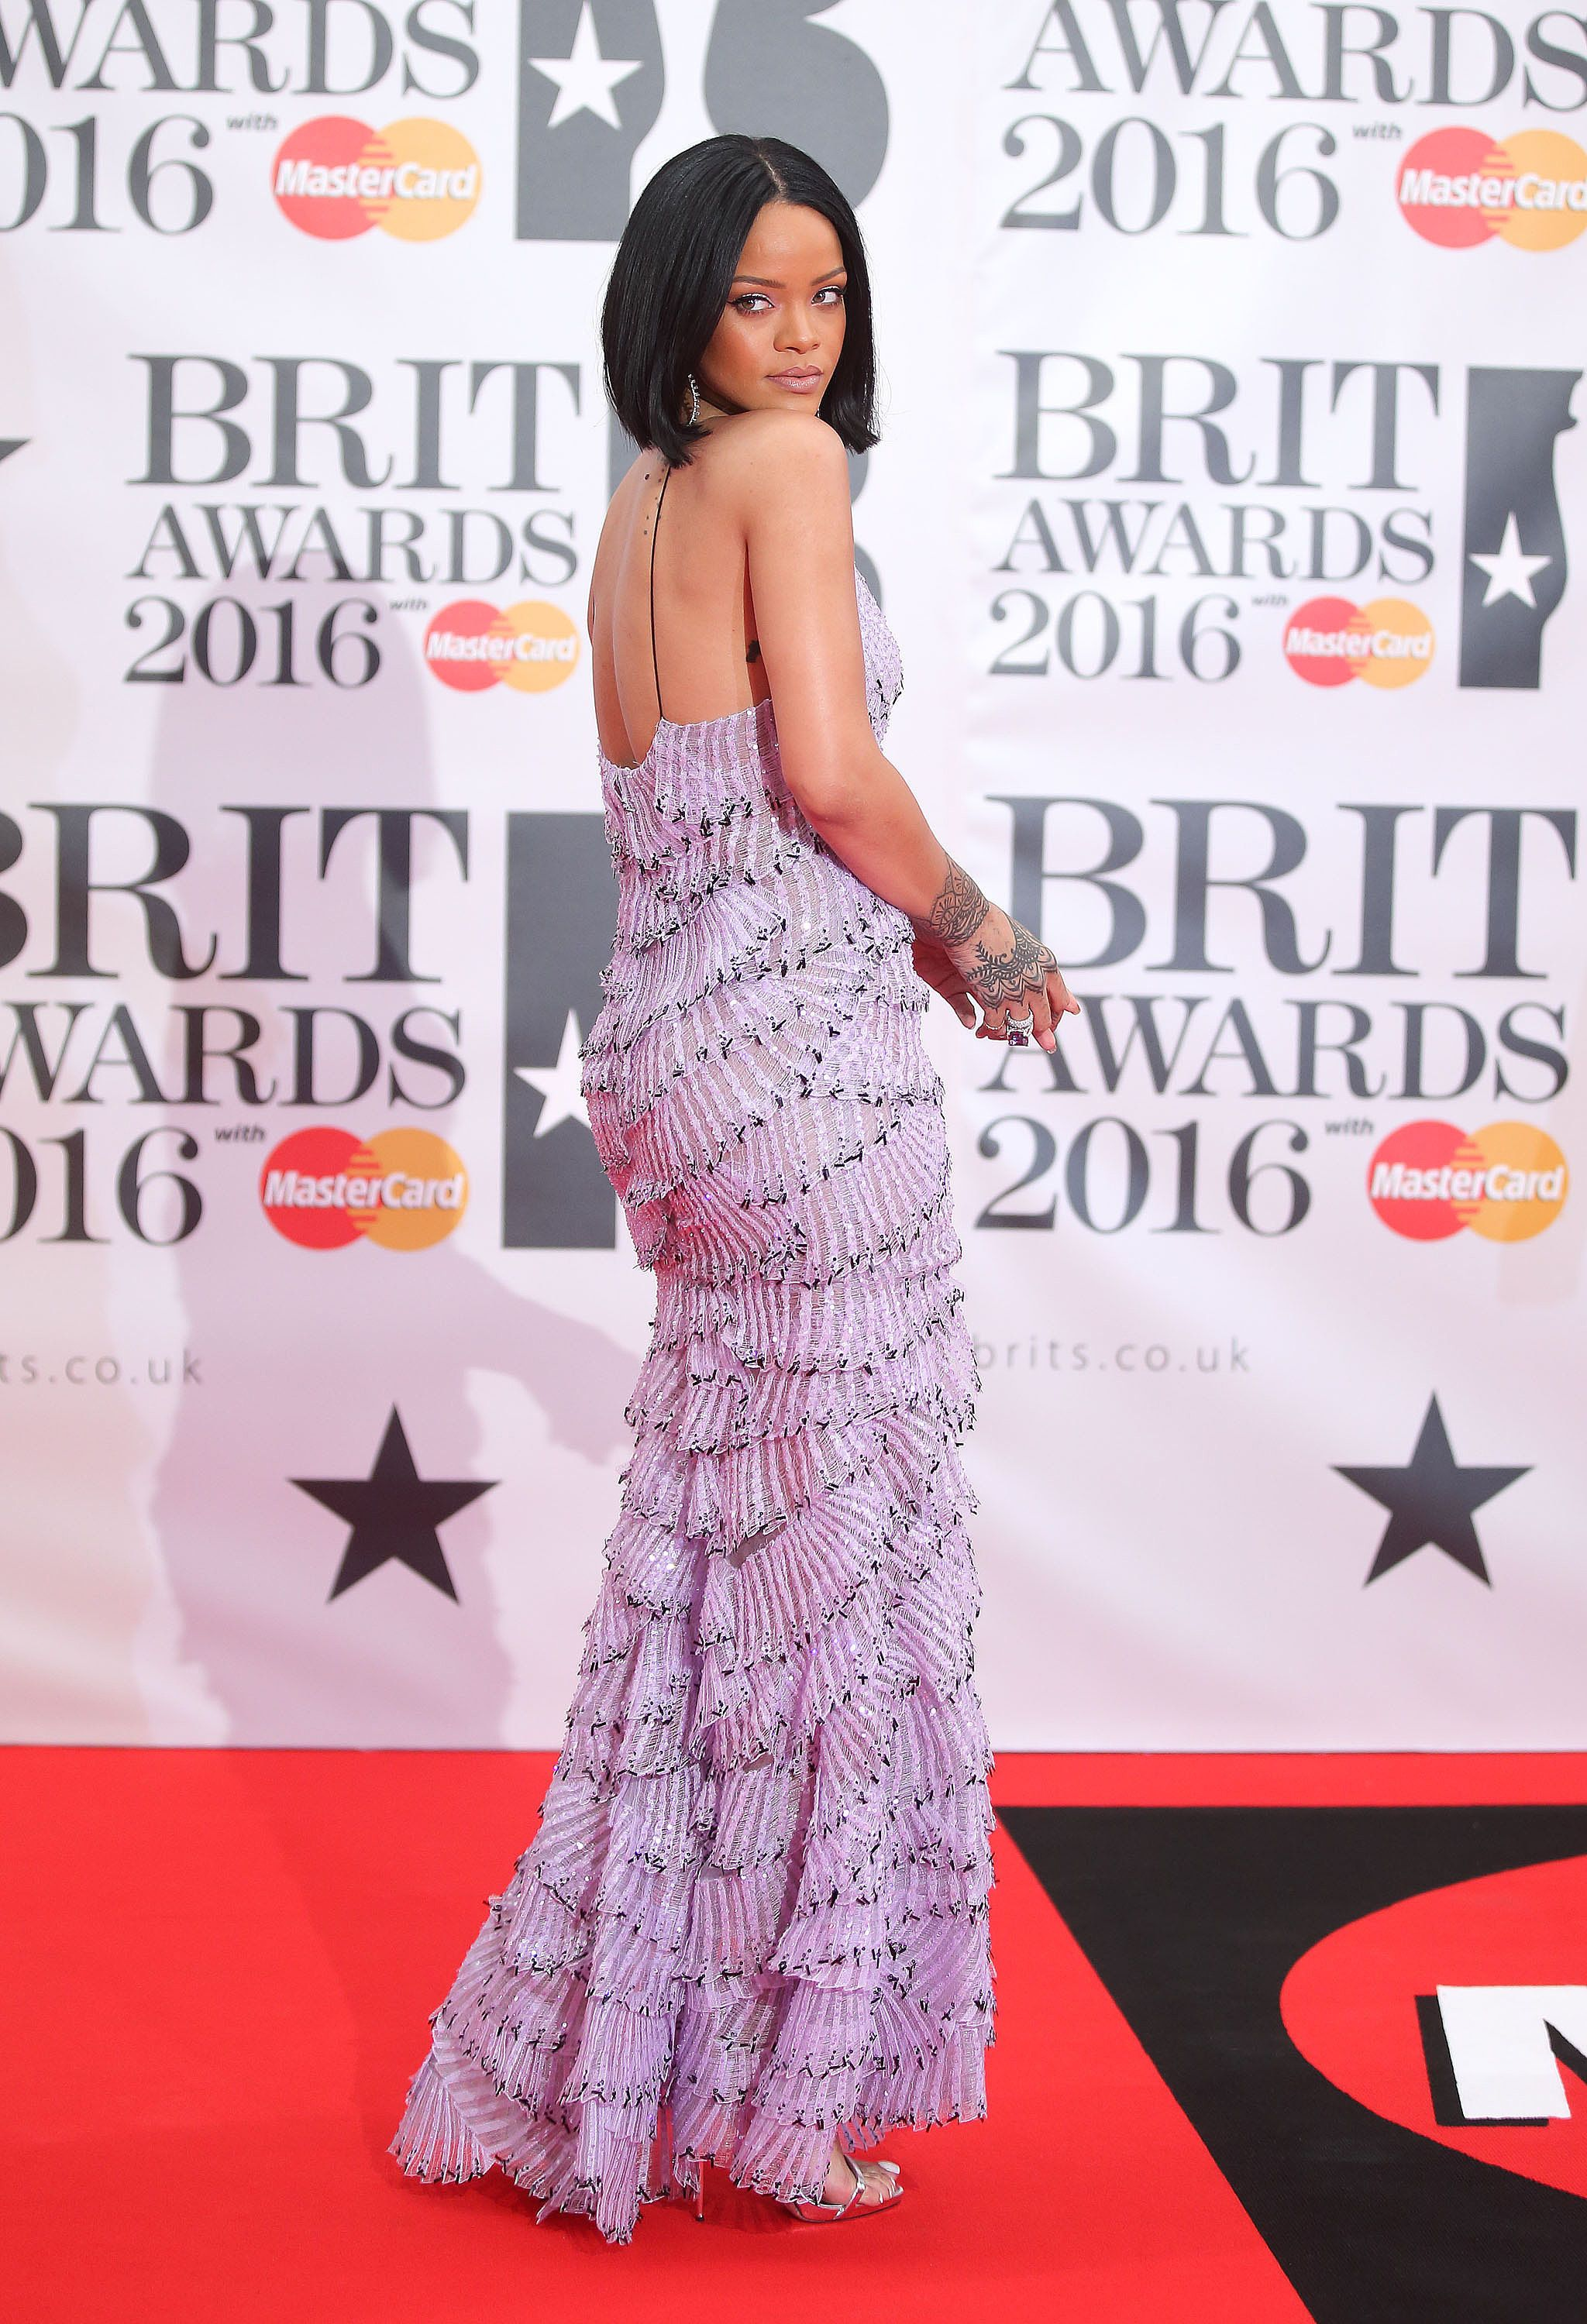 Rihanna Work, Work, Work, Work, Works the Hell Out of the Brit Awards